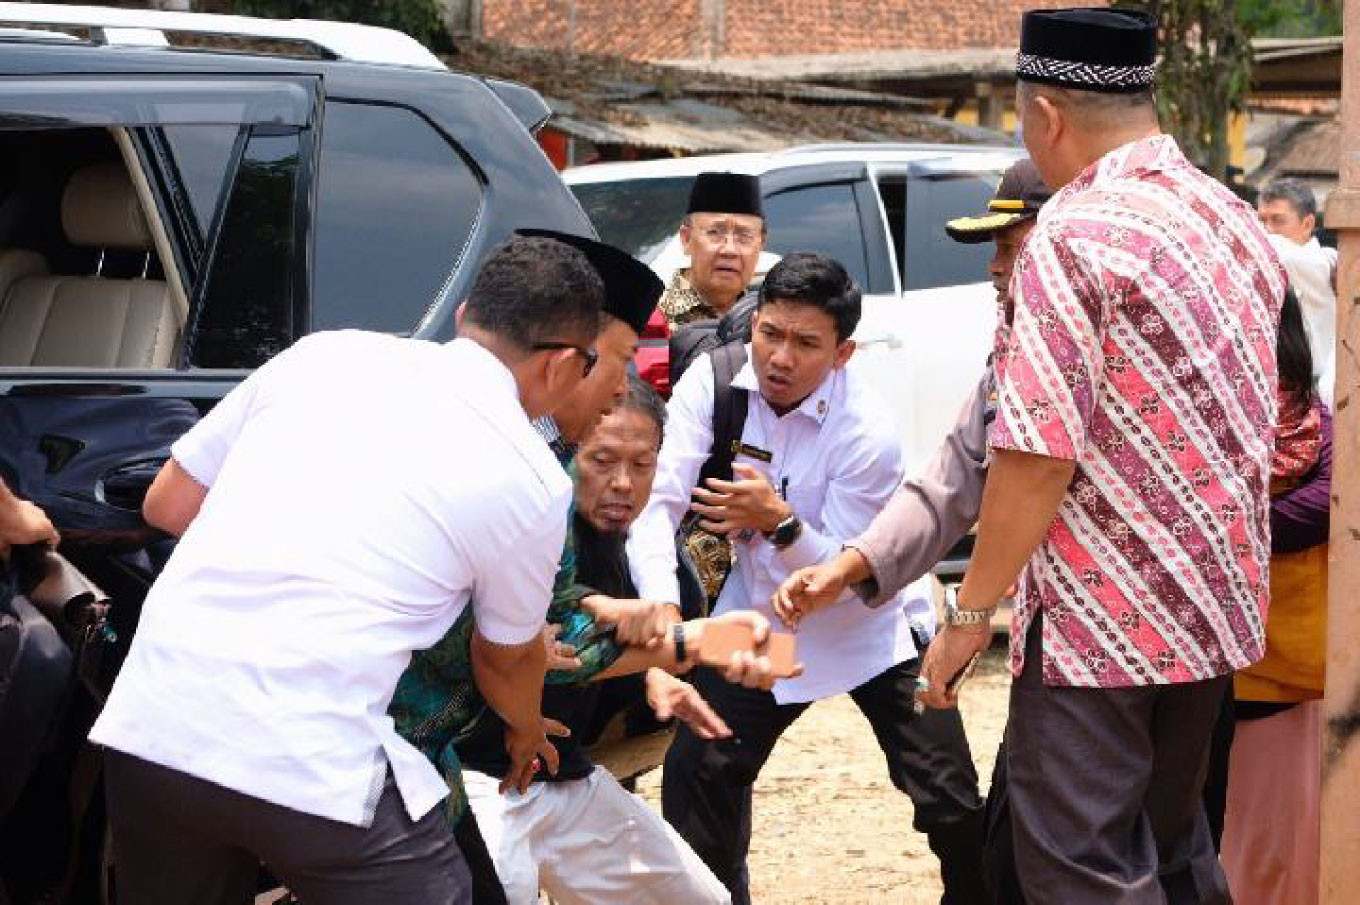 Prosecutors seek up to 16 years for Wiranto's assailants